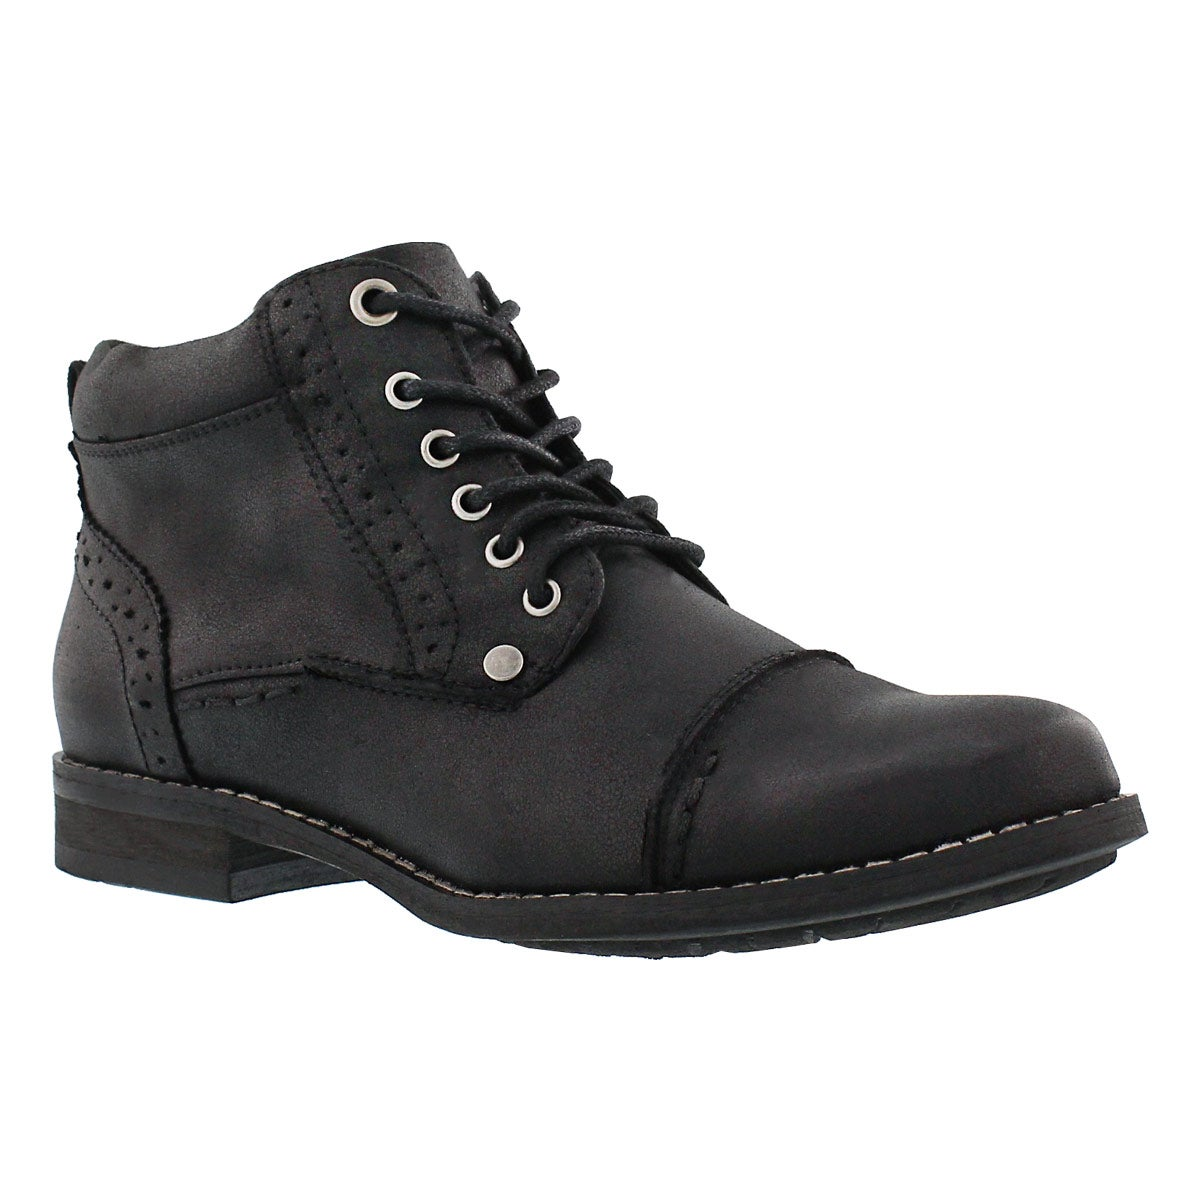 Lds Belicia II black lace up ankle boot